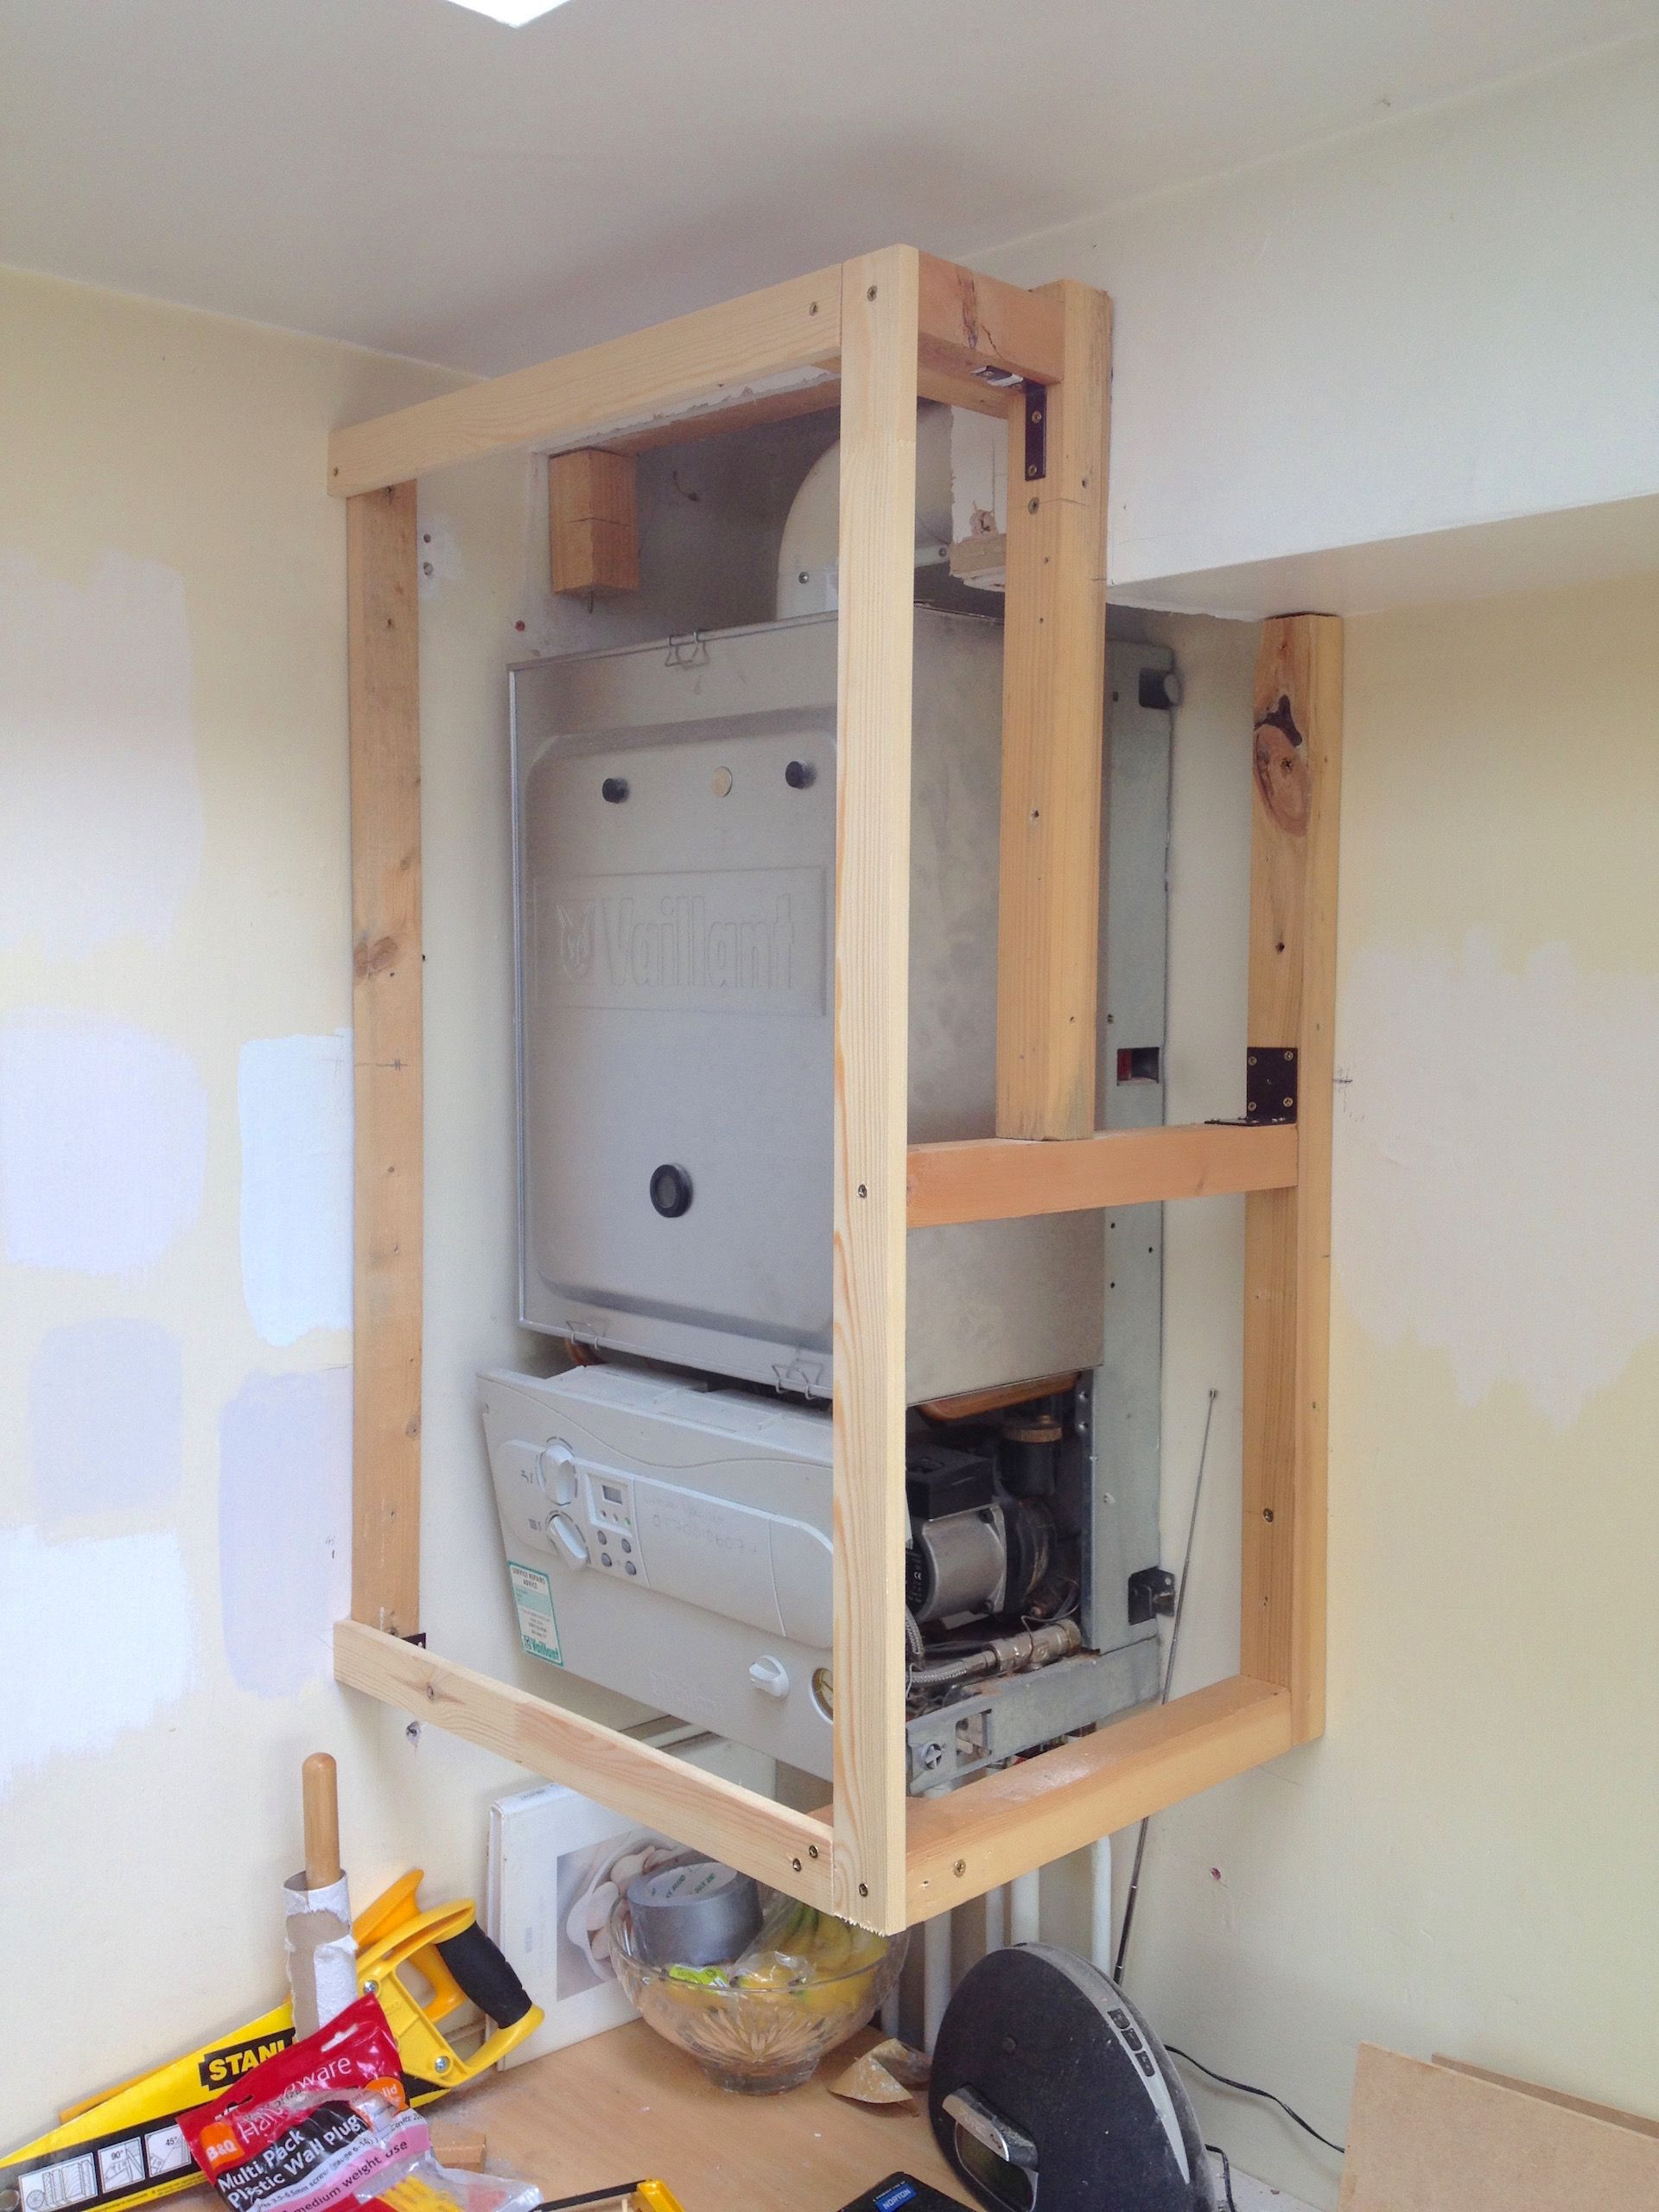 How To Make An Simple And Attractive Diy Boiler Cover Diy Cupboards Kitchen Furniture Storage Small Utility Room